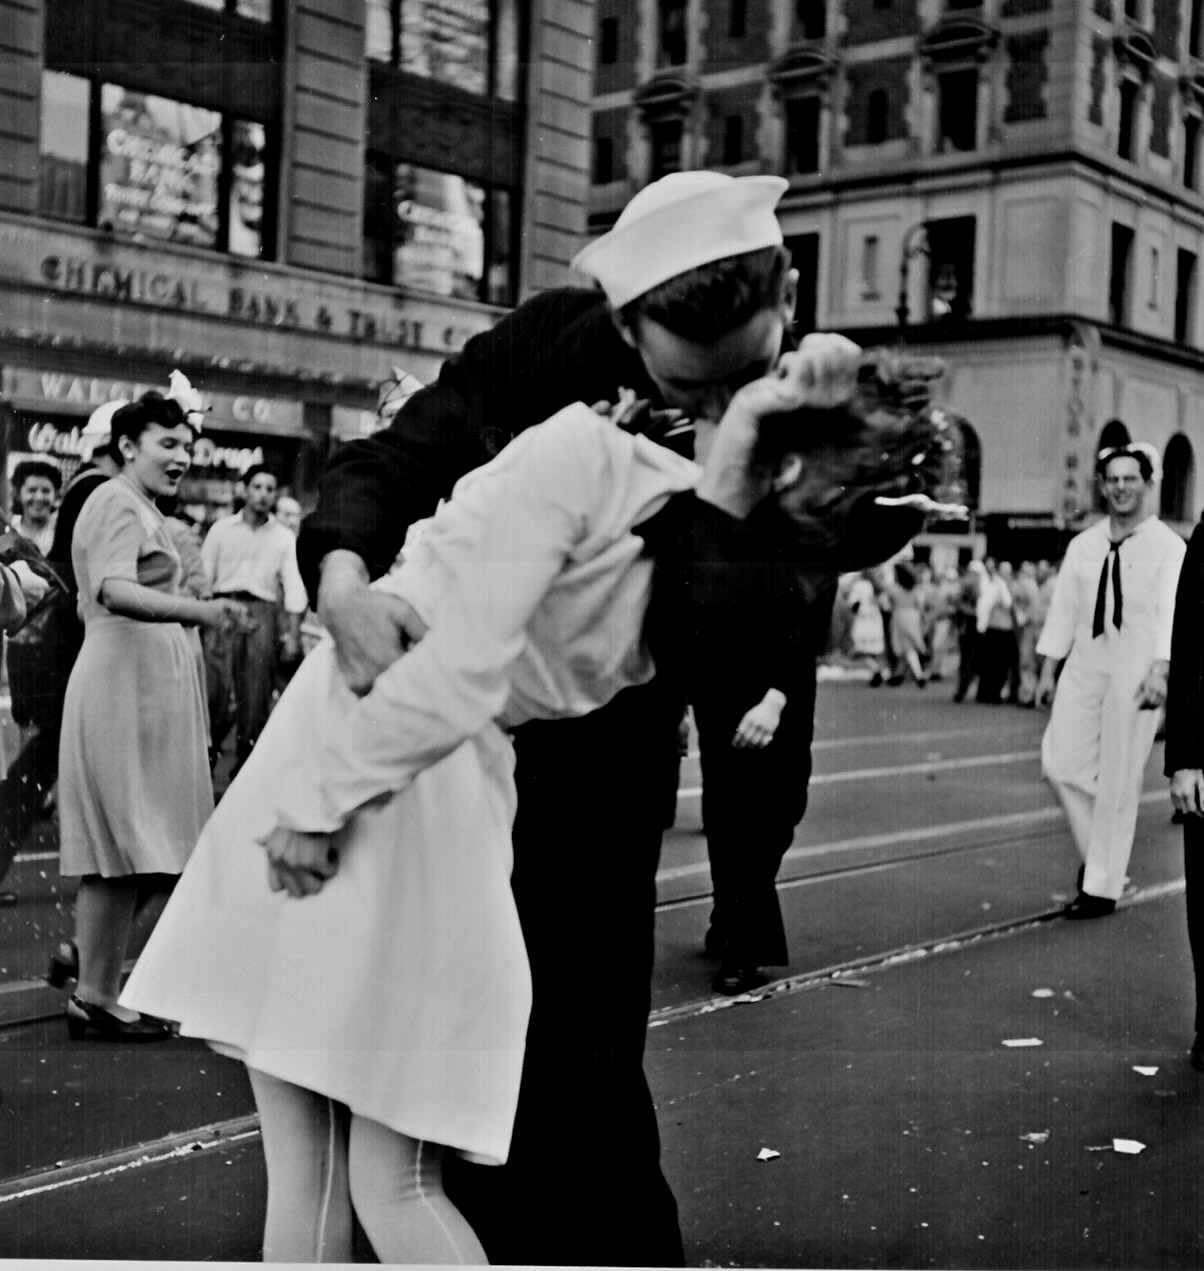 pub-domain-kiss-ww2-197-l-copy.jpg